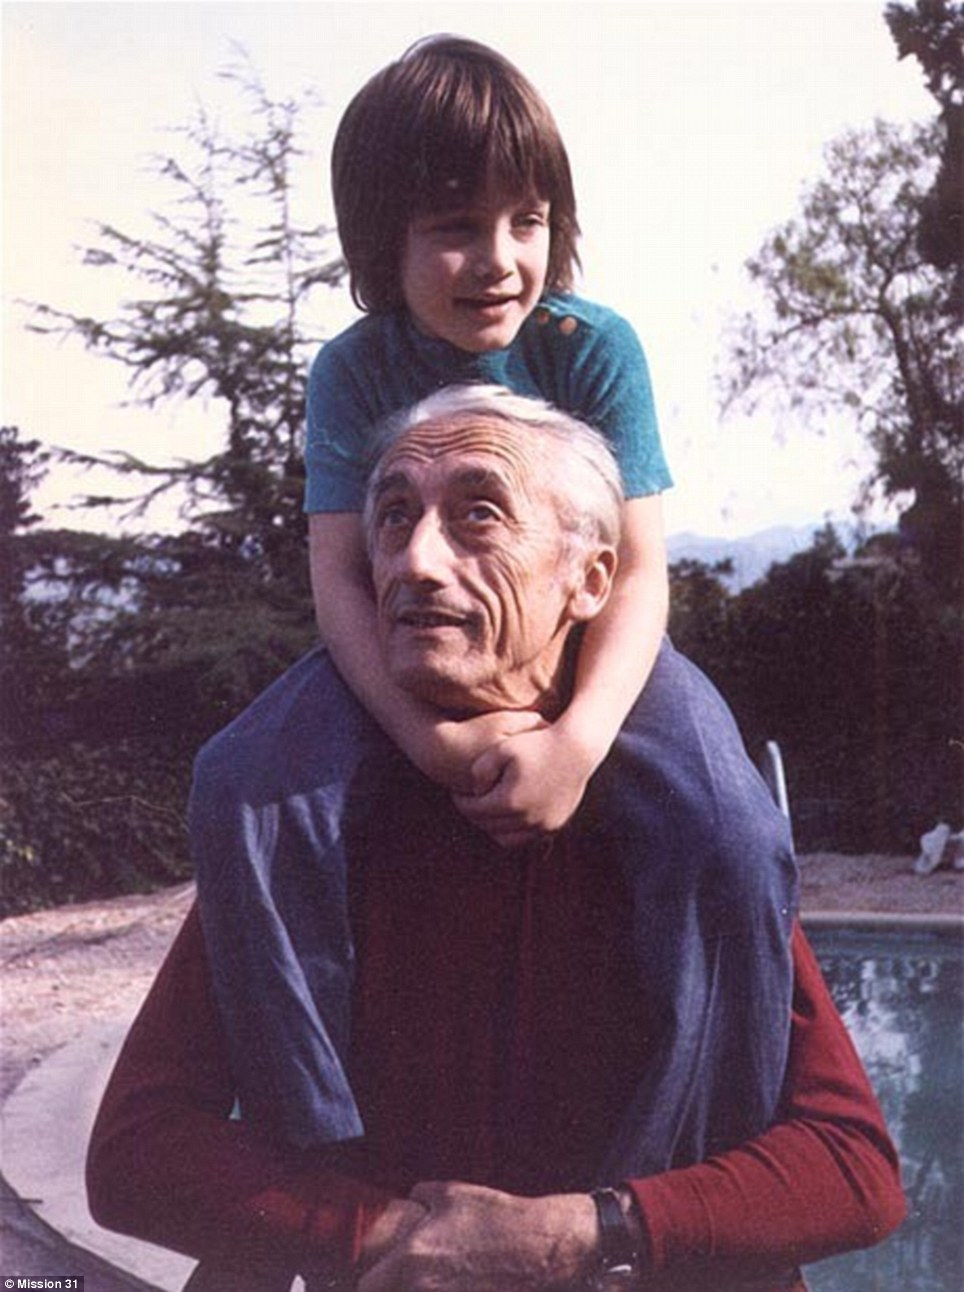 Fabien Cousteau is pictured as a young boy on the shoulders of his grandfather, famous French explorer Jacques-Yves Cousteau